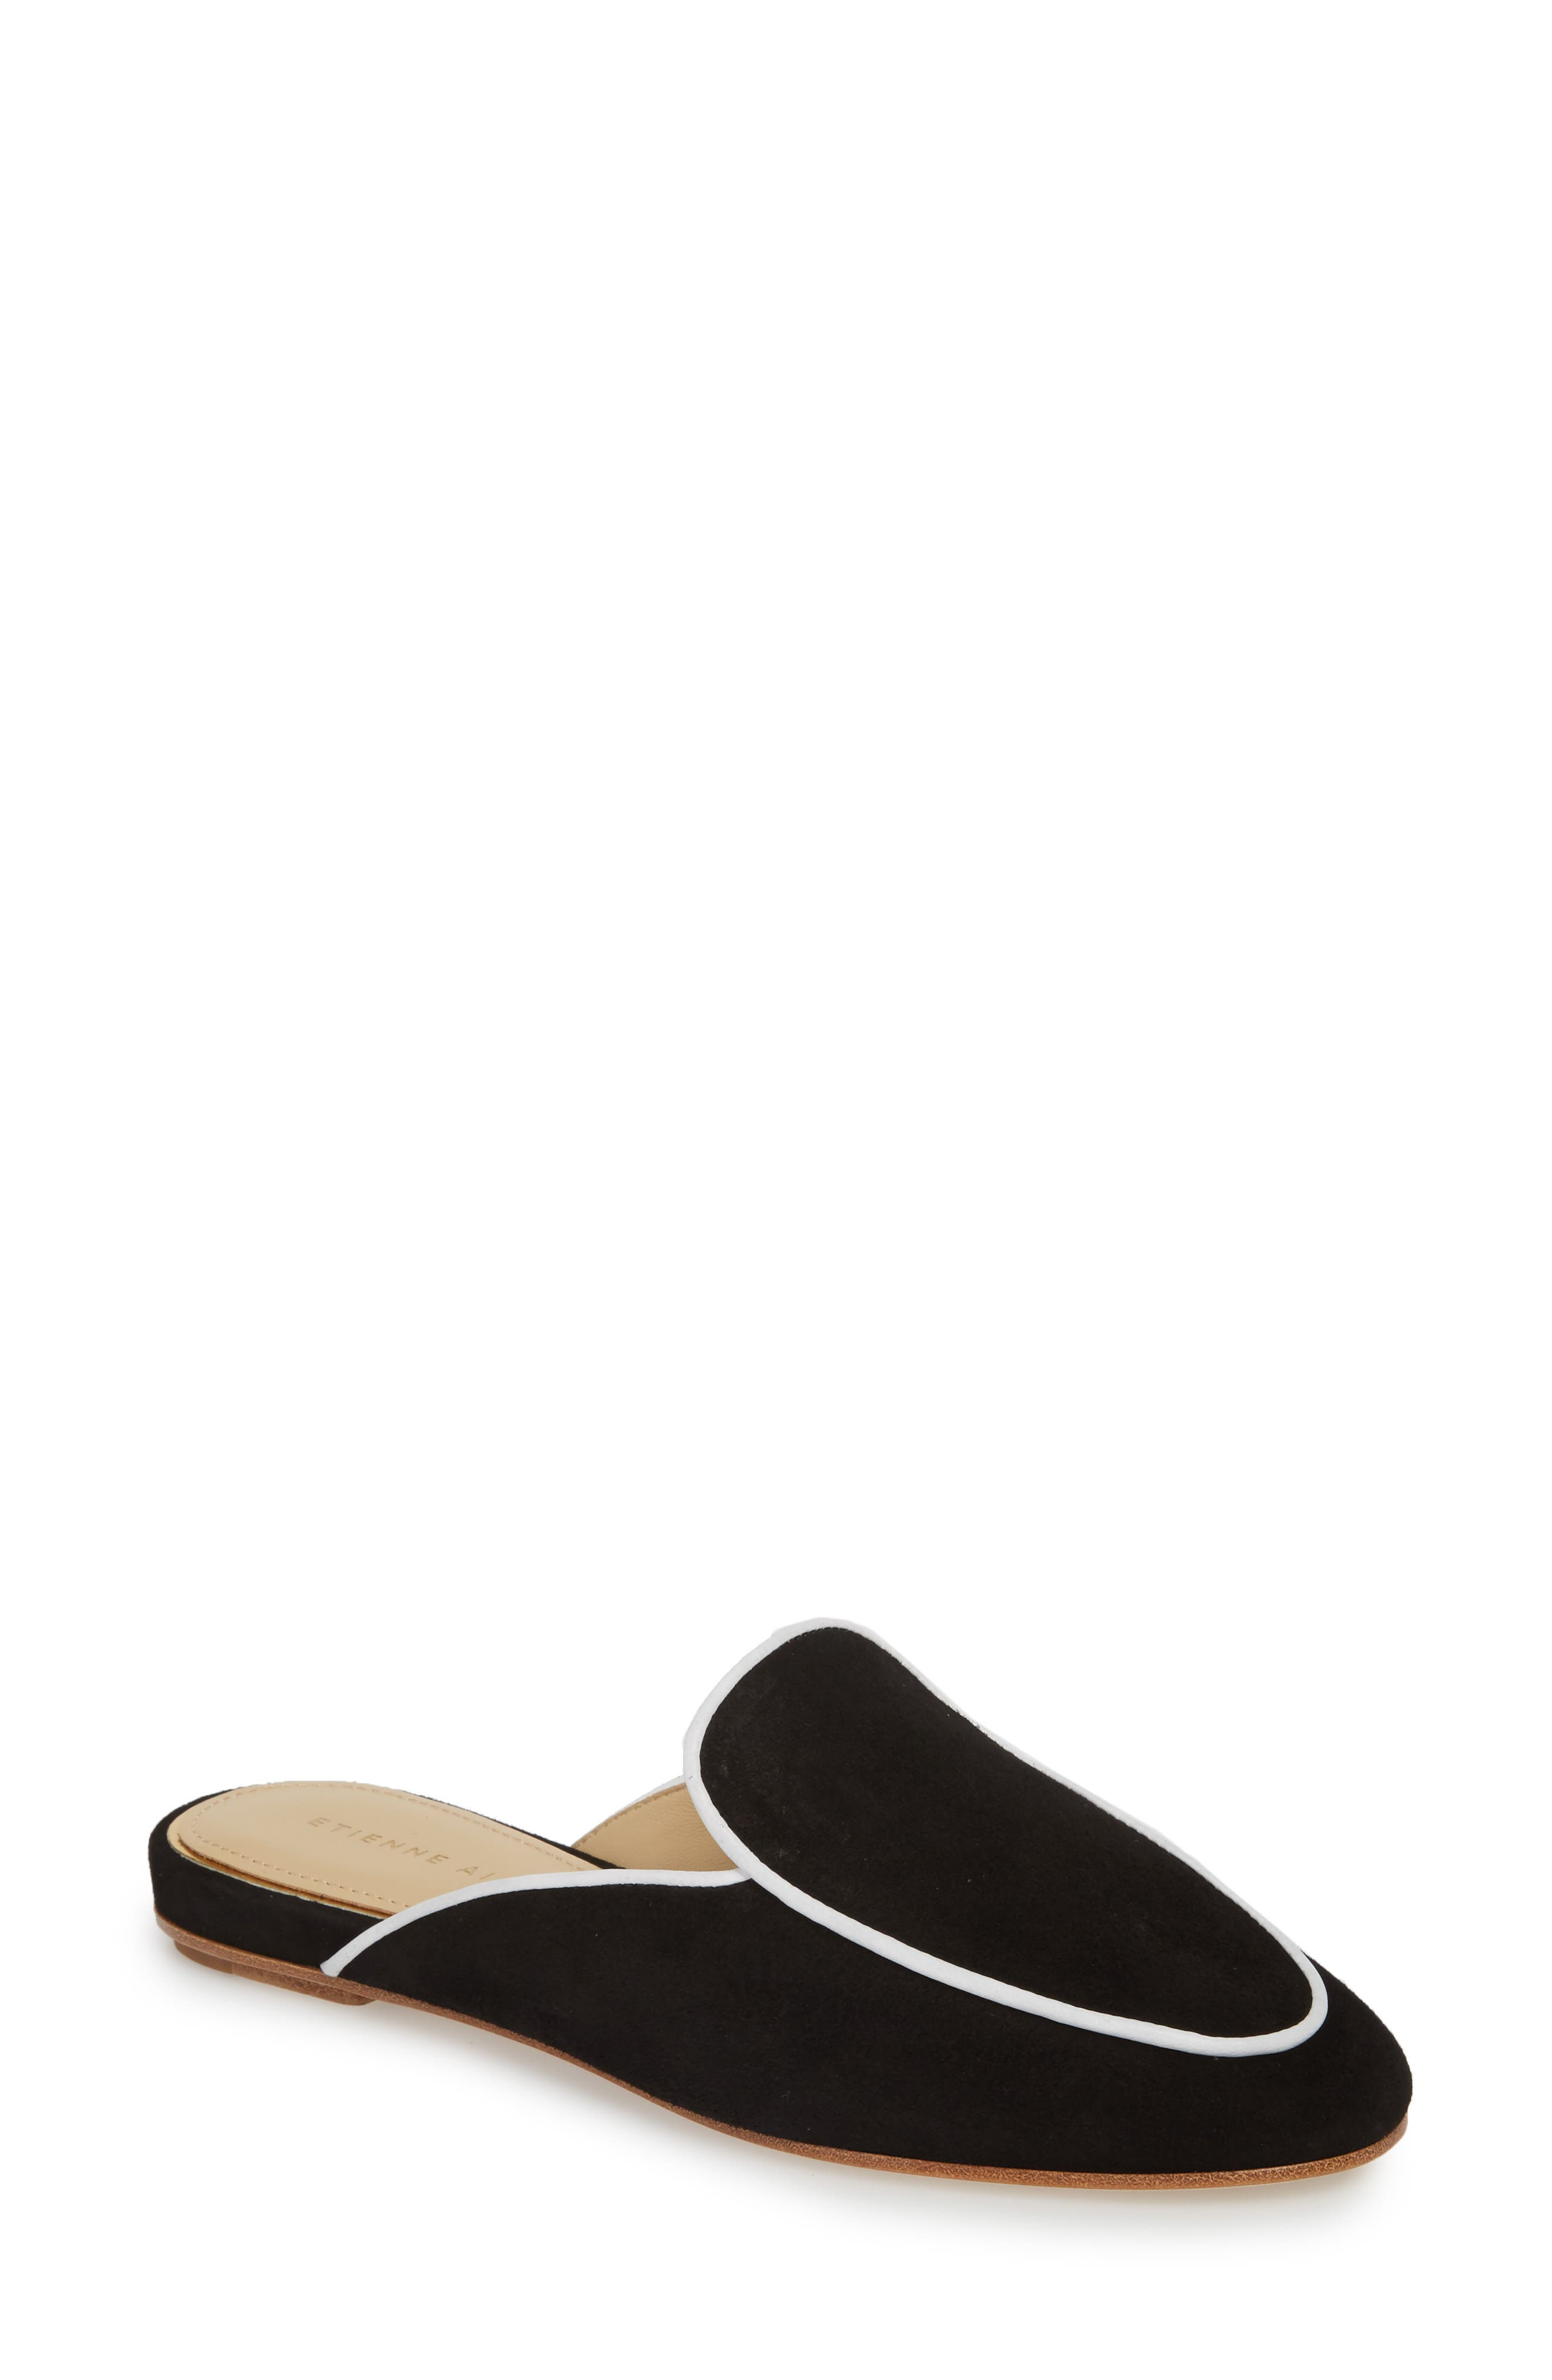 Capri Apron Toe Loafer Mule,                             Main thumbnail 1, color,                             BLACK/ WHITE SUEDE